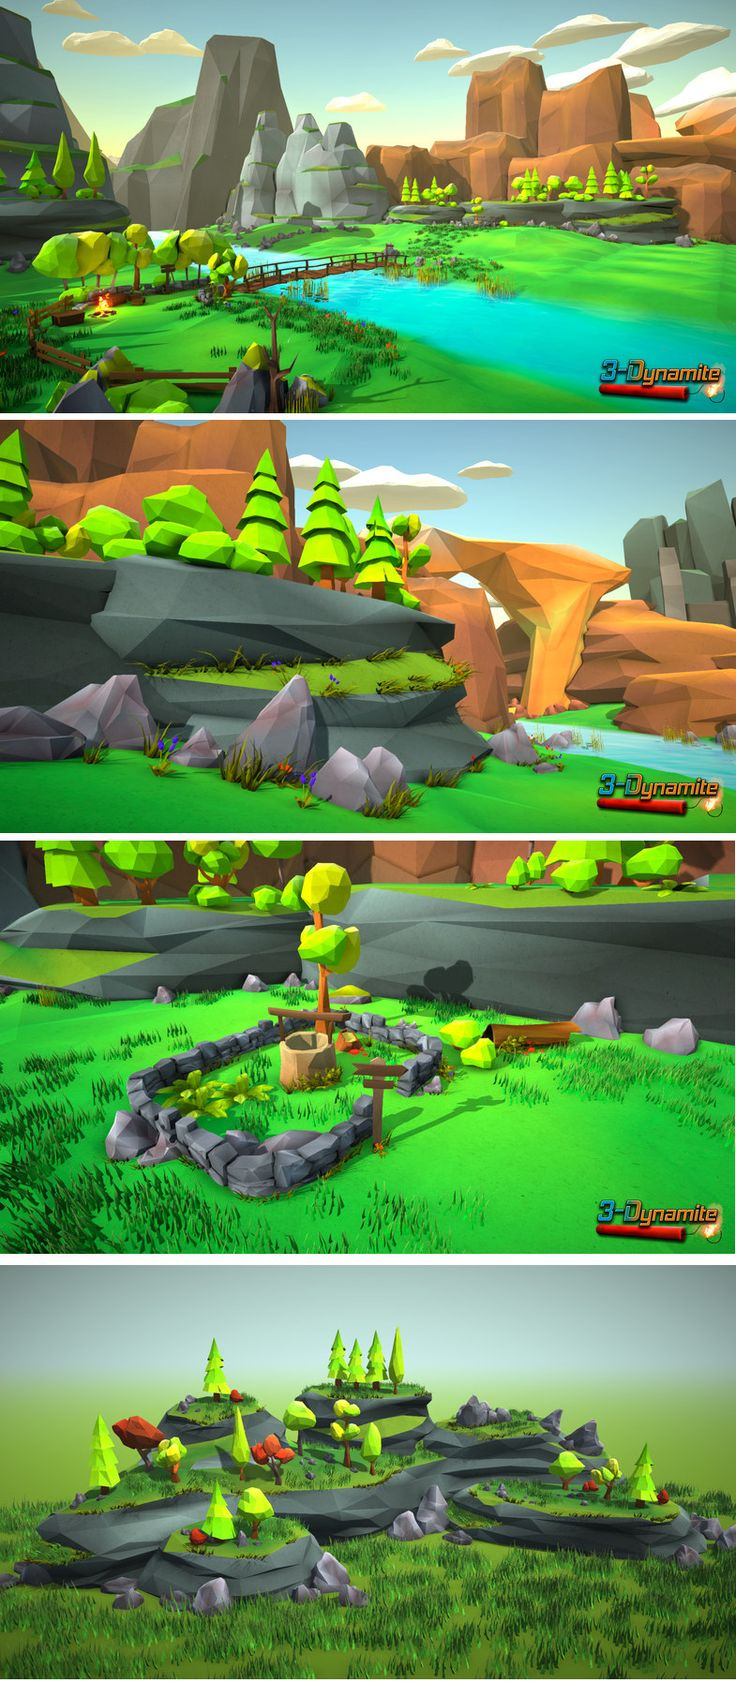 Low Poly Environment Pack for all of you that want to make low poly style environments easily. All models are coloured by vertex color techniques, so no textures and only a few materials are needed. Different environments: Dessert, forest, winter, autumn.